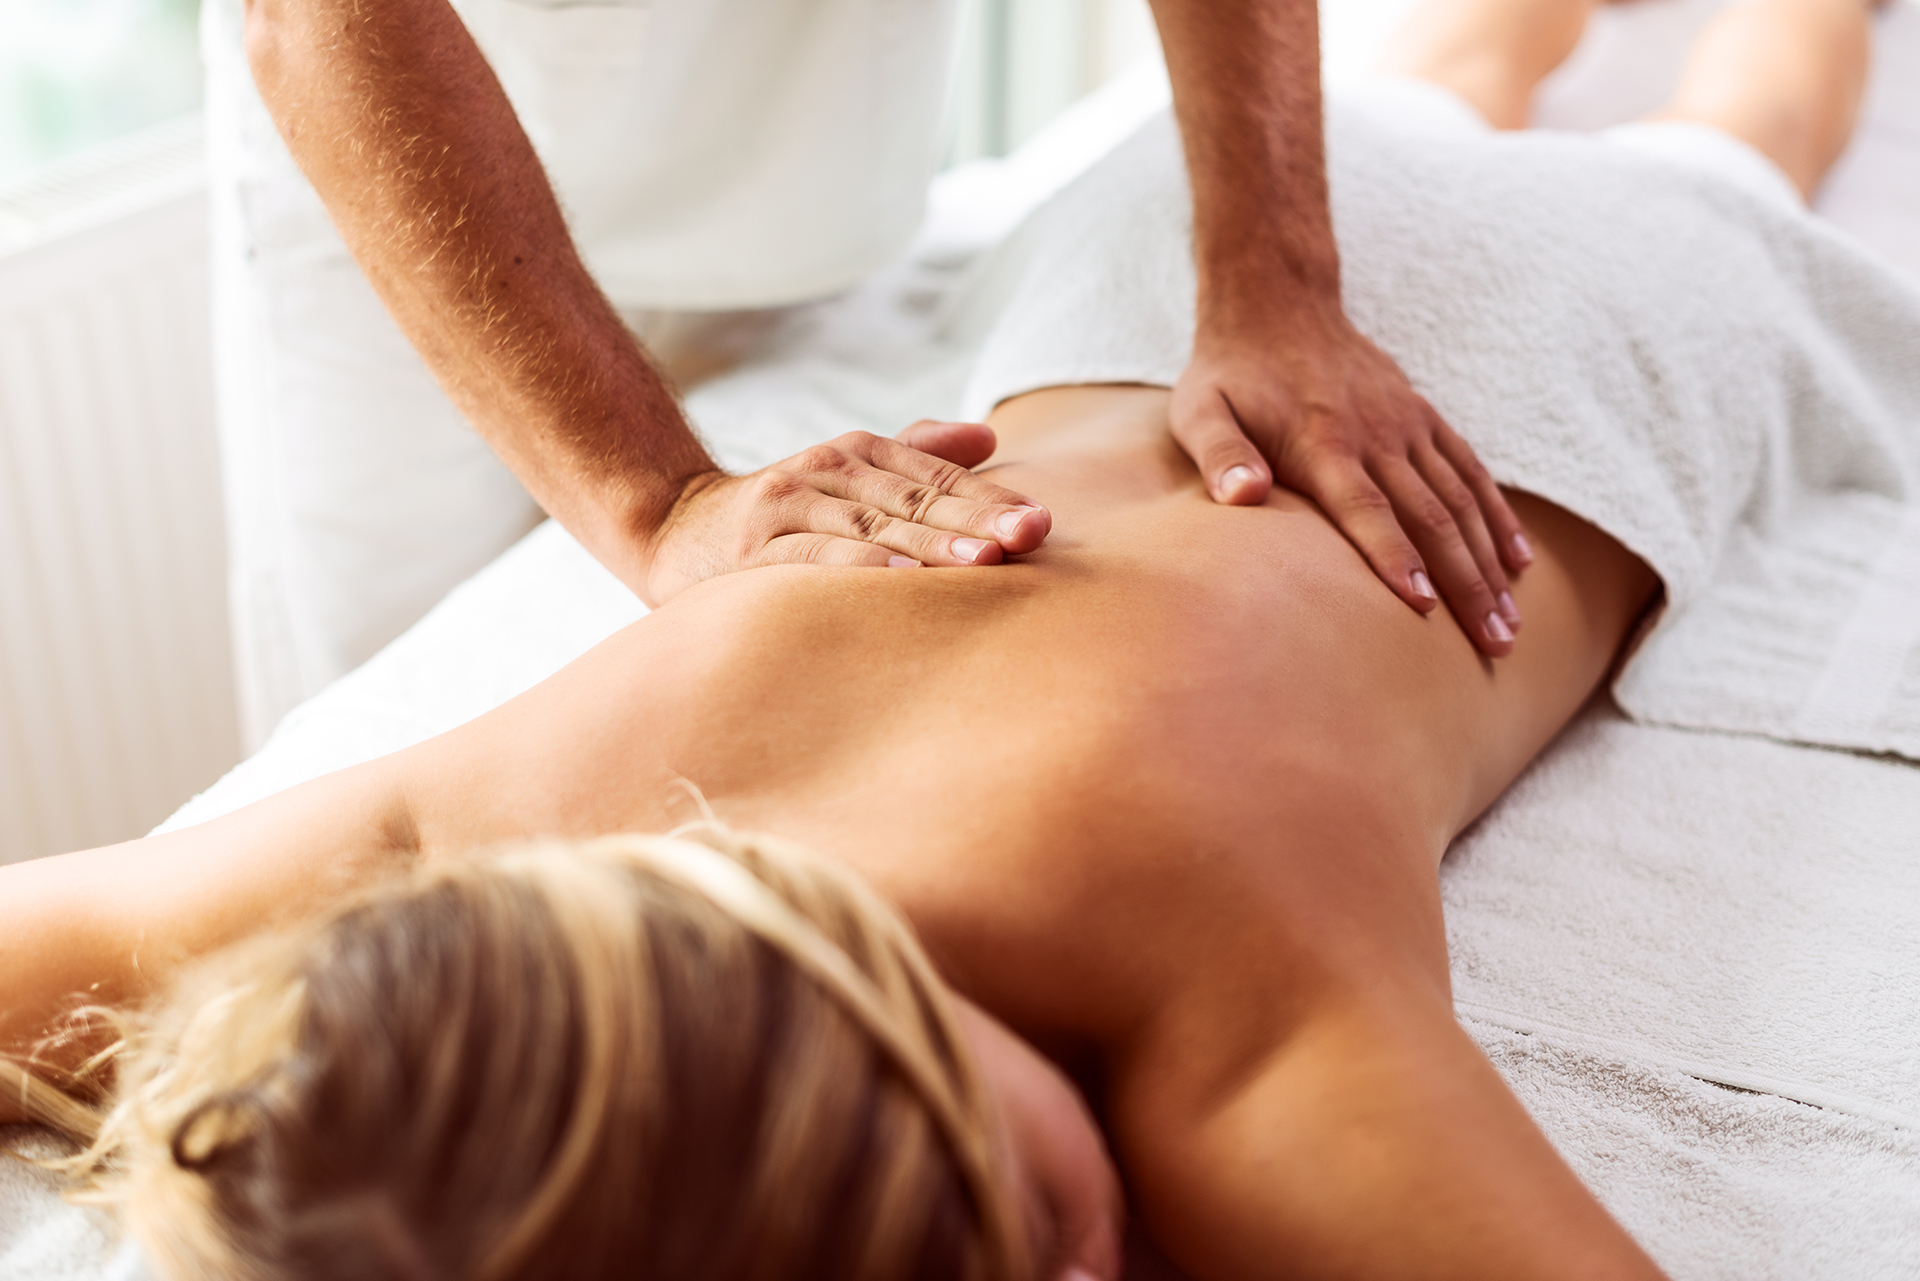 Woman receiving a massage in a towel